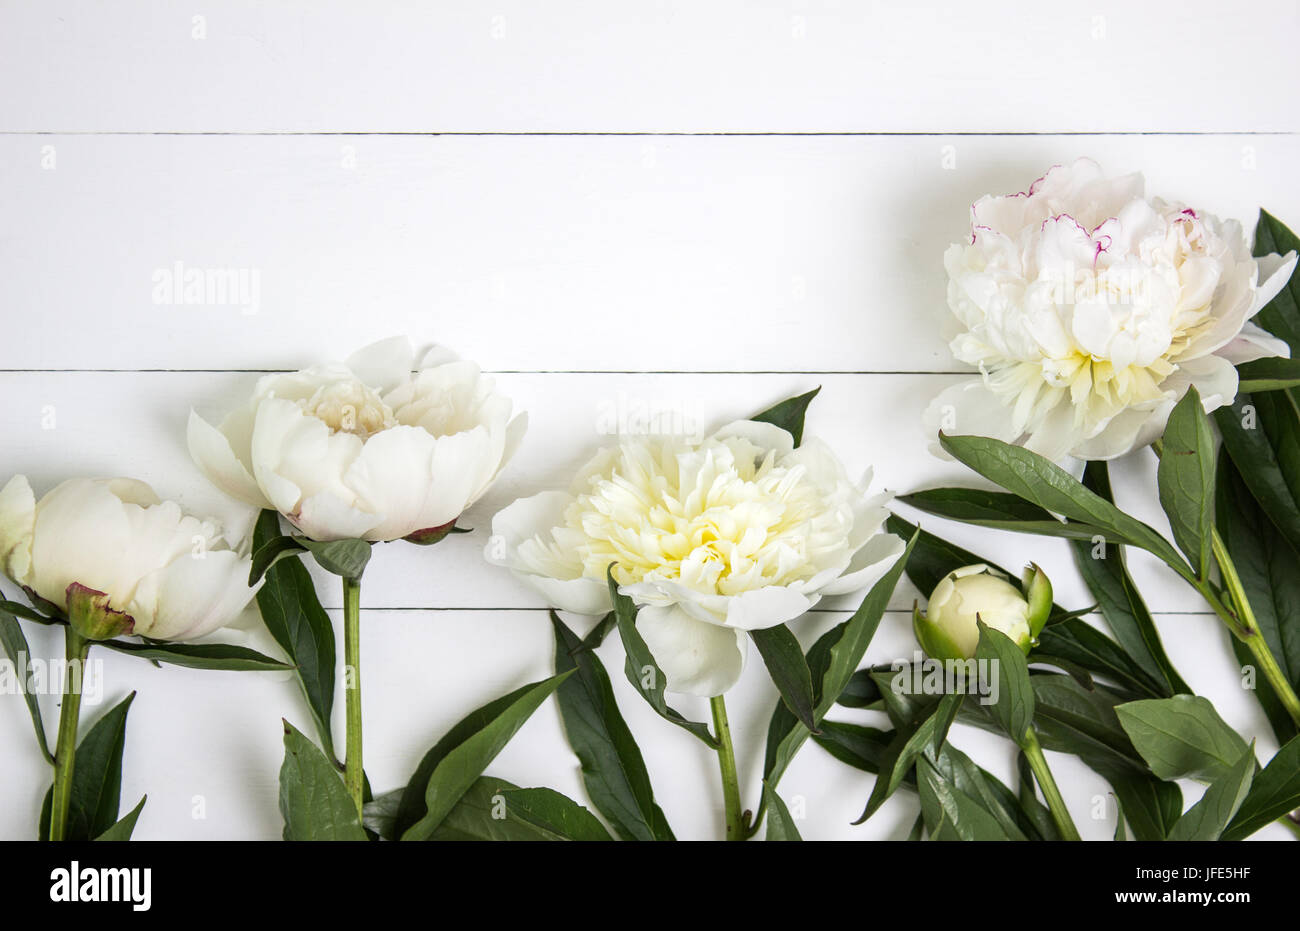 White Peonies Flower On White Rustic Wooden Background With Blank